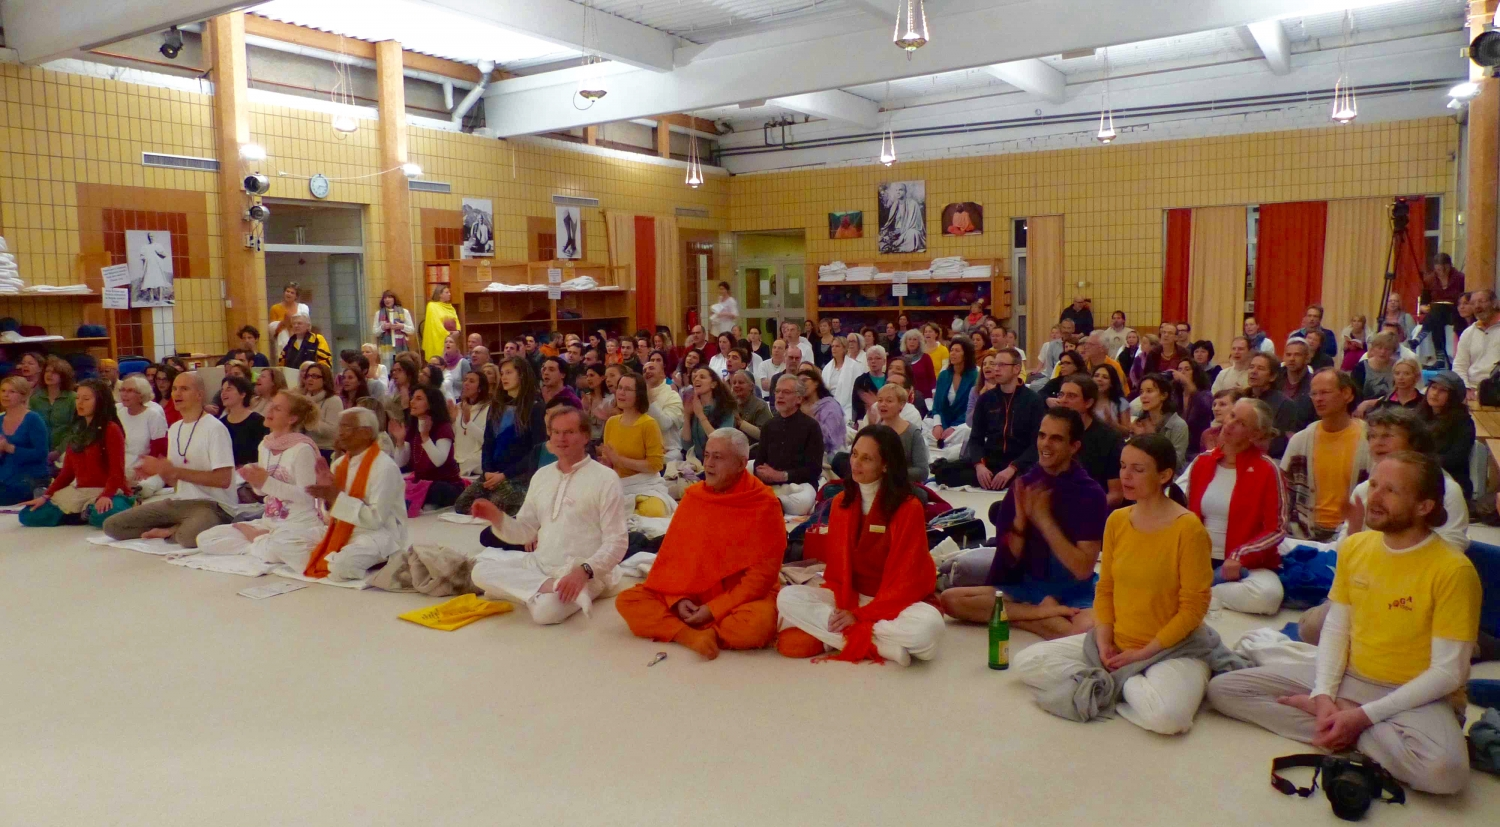 1º Congresso Europeu do Yoga - 2014 - Bad-Meinberg, Hannover, Alemanha